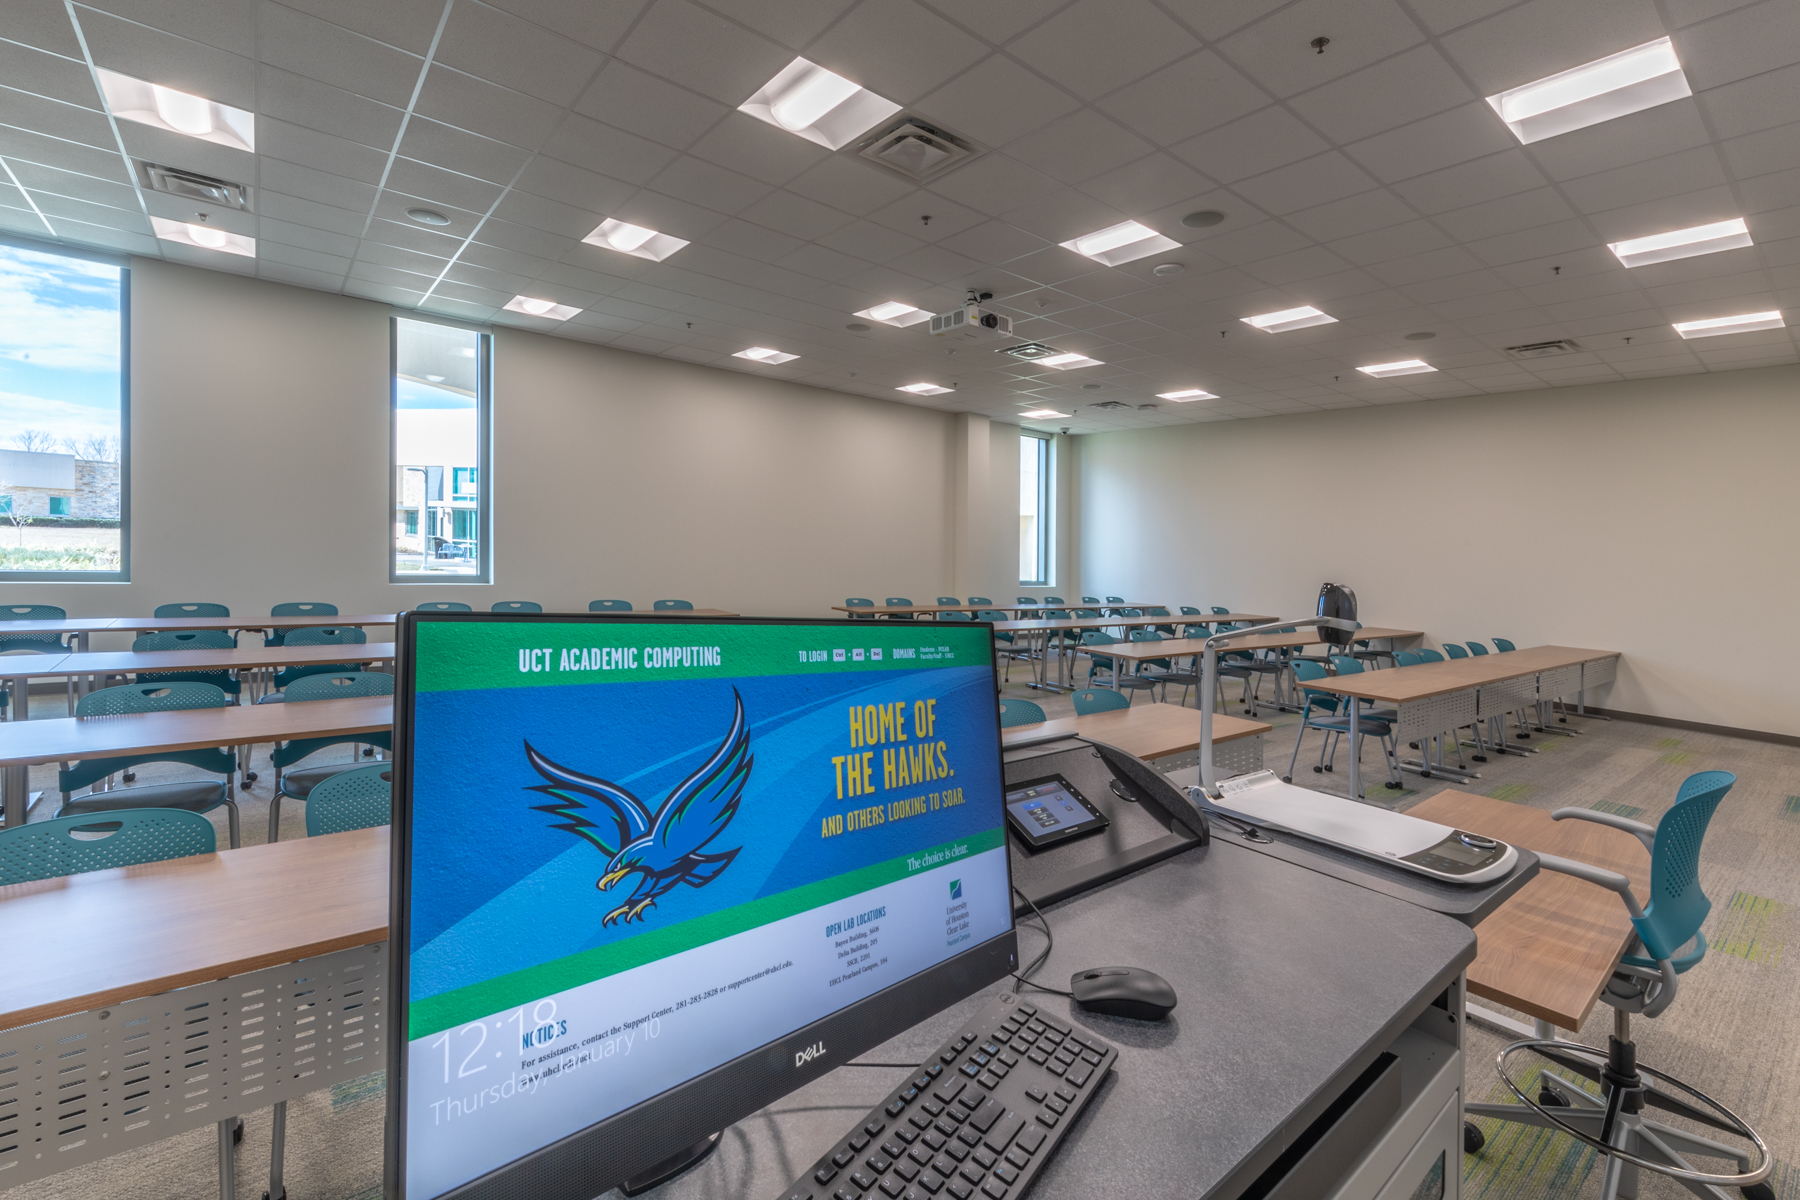 UHCL_Pearland_011019_sm-29.jpg